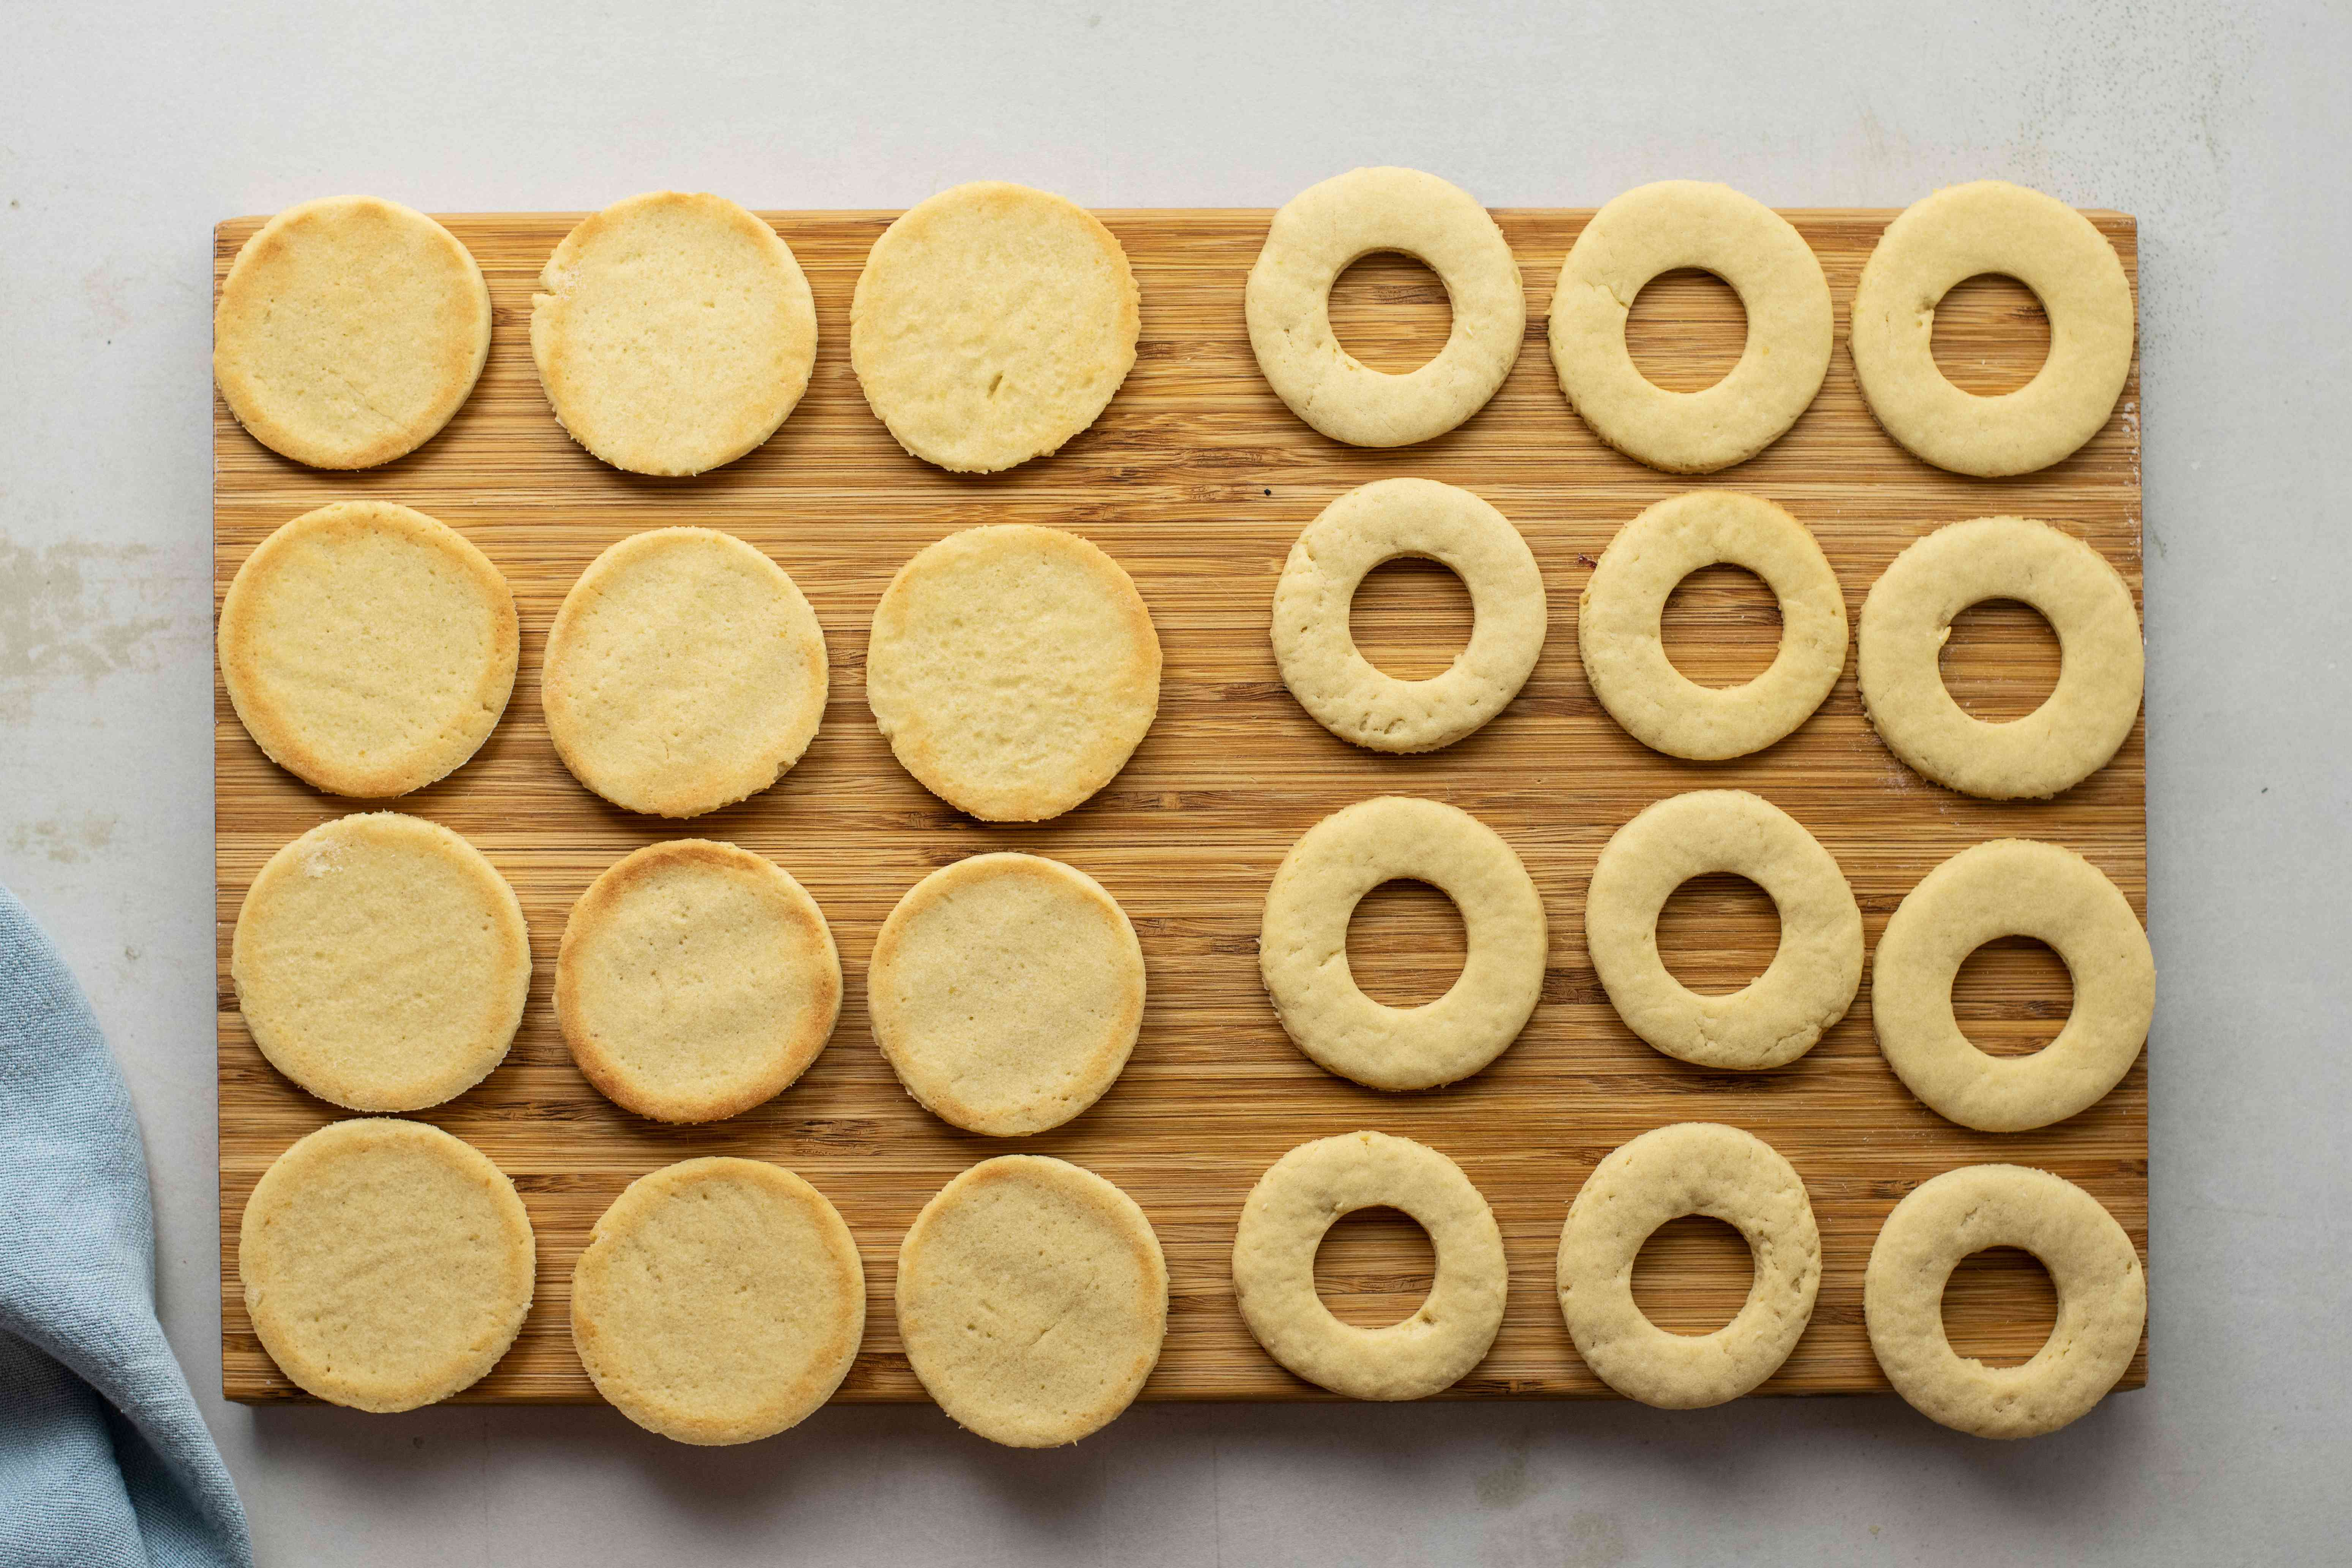 Baked maslenki cookies and holed-out tops of cookies on a wooden cutting board